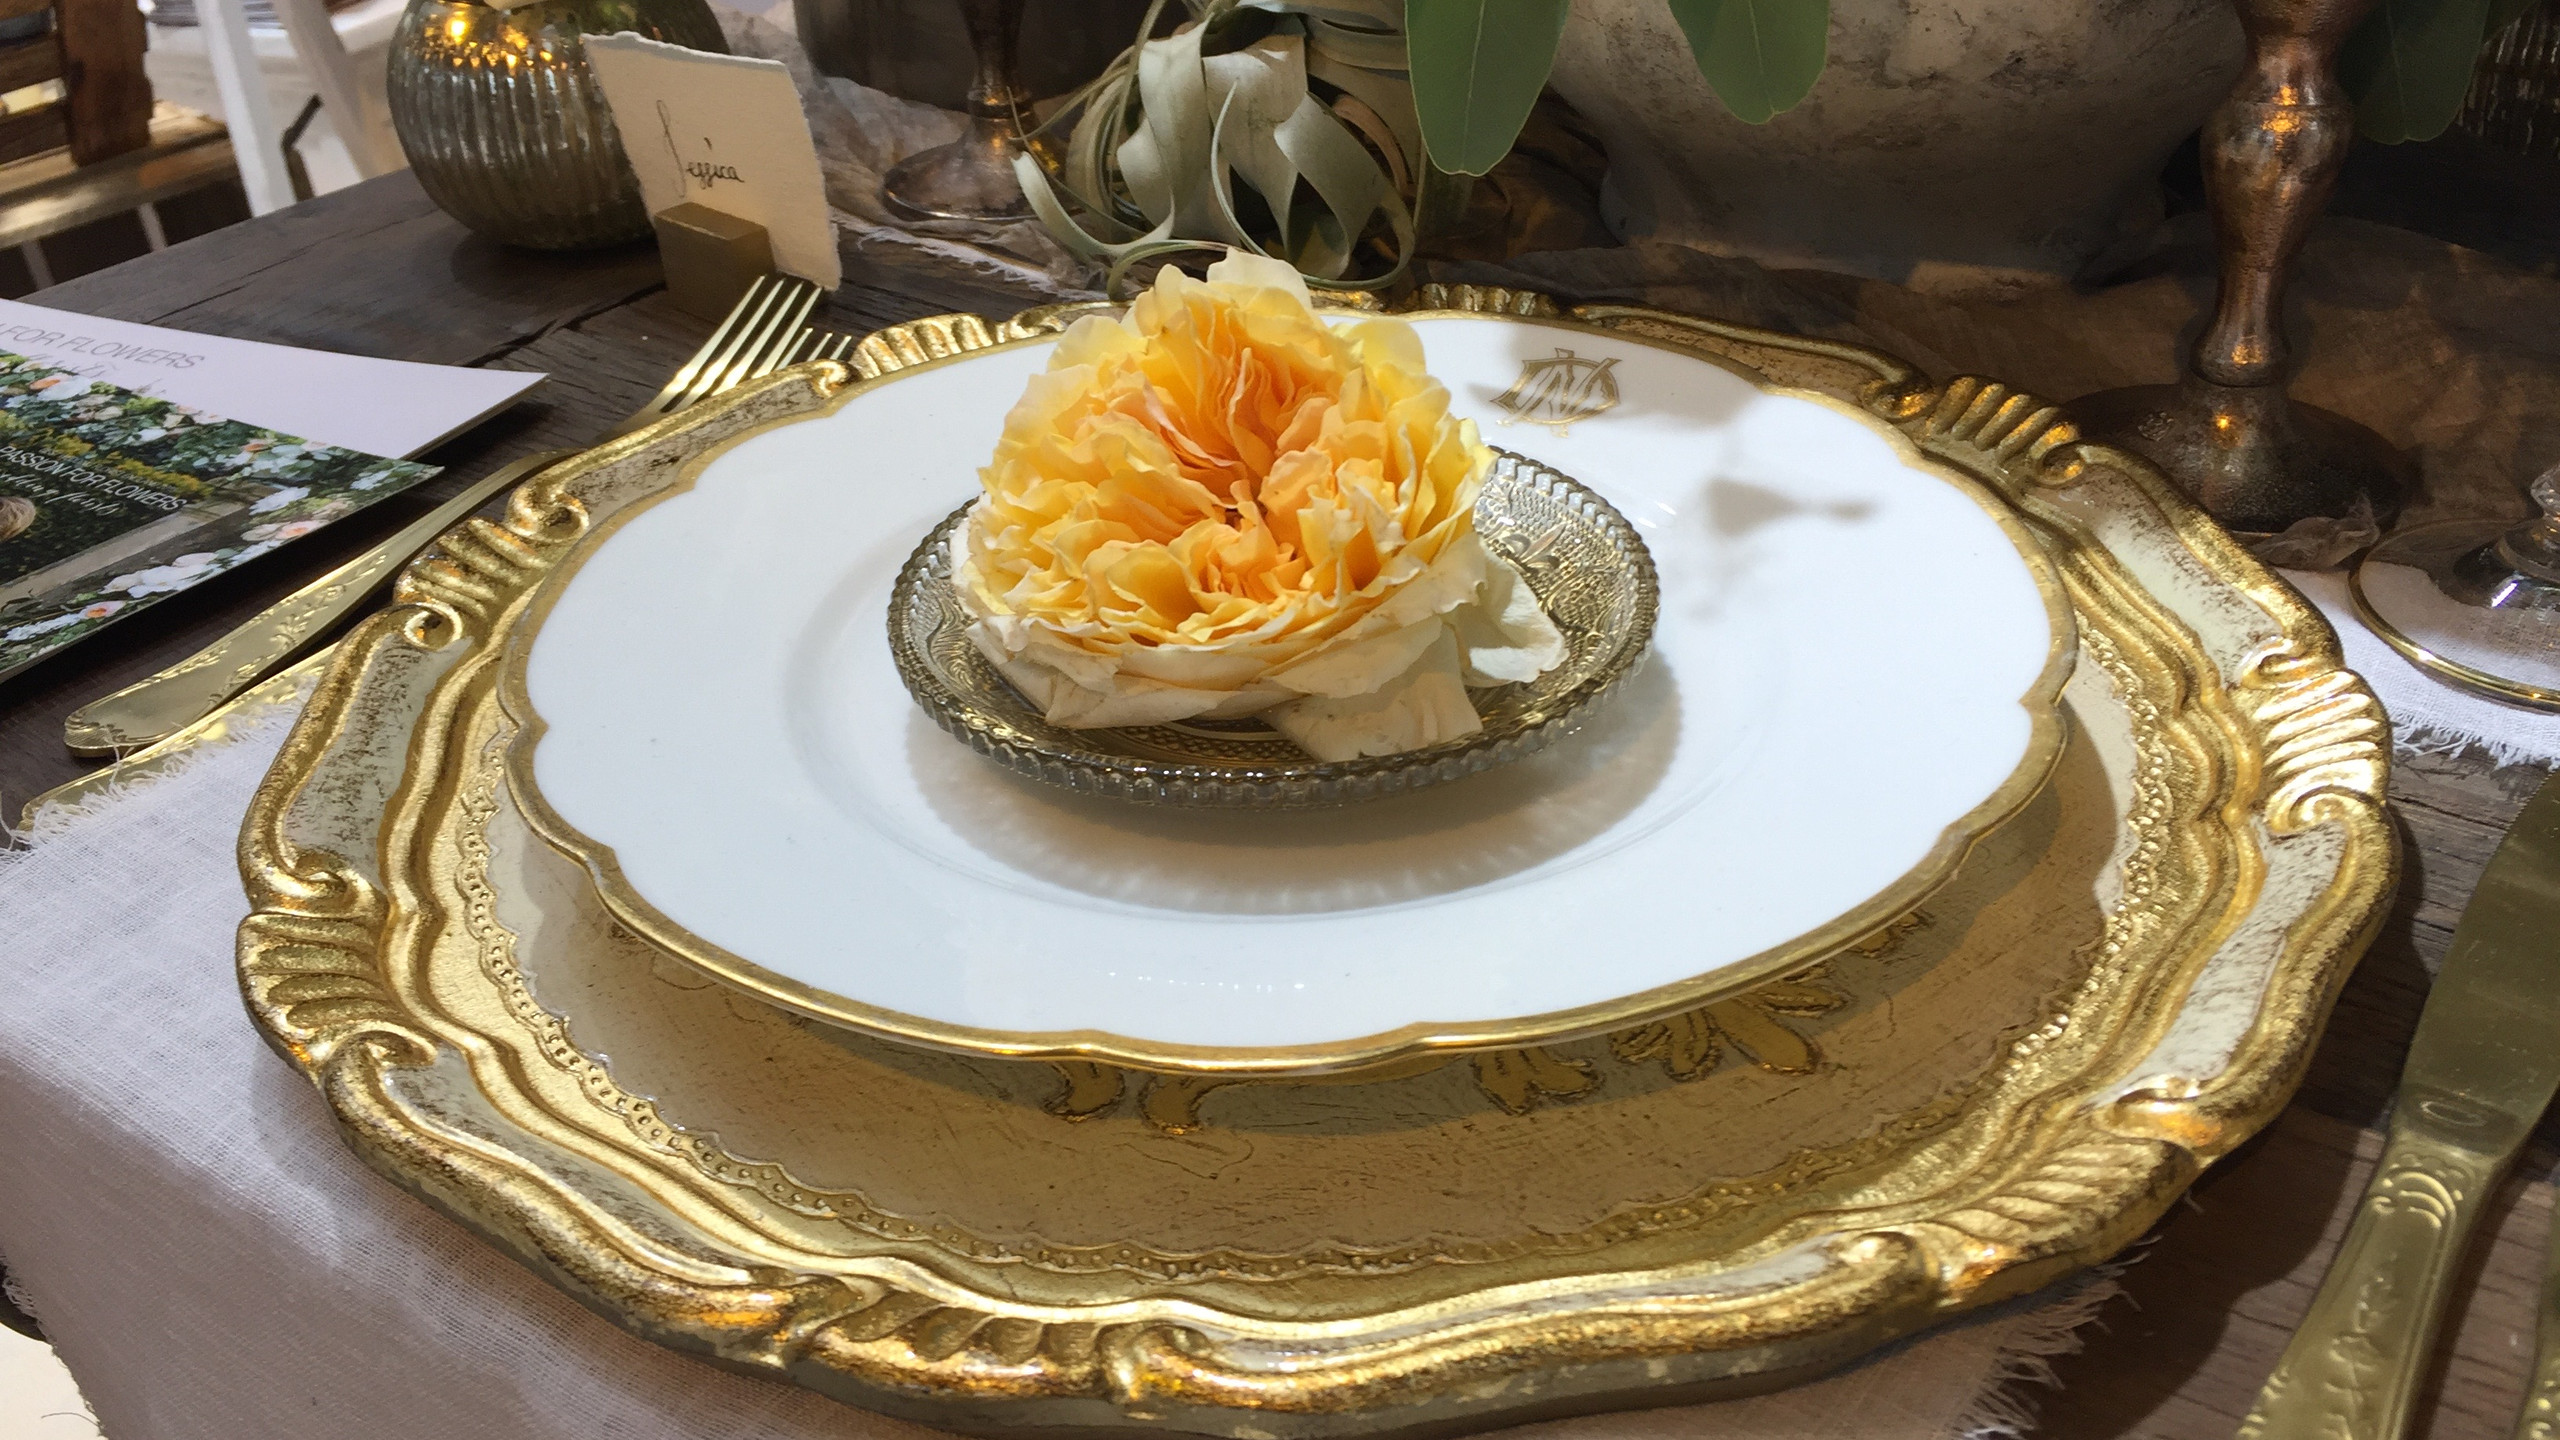 More detail of the place settings from Passion for Flowers